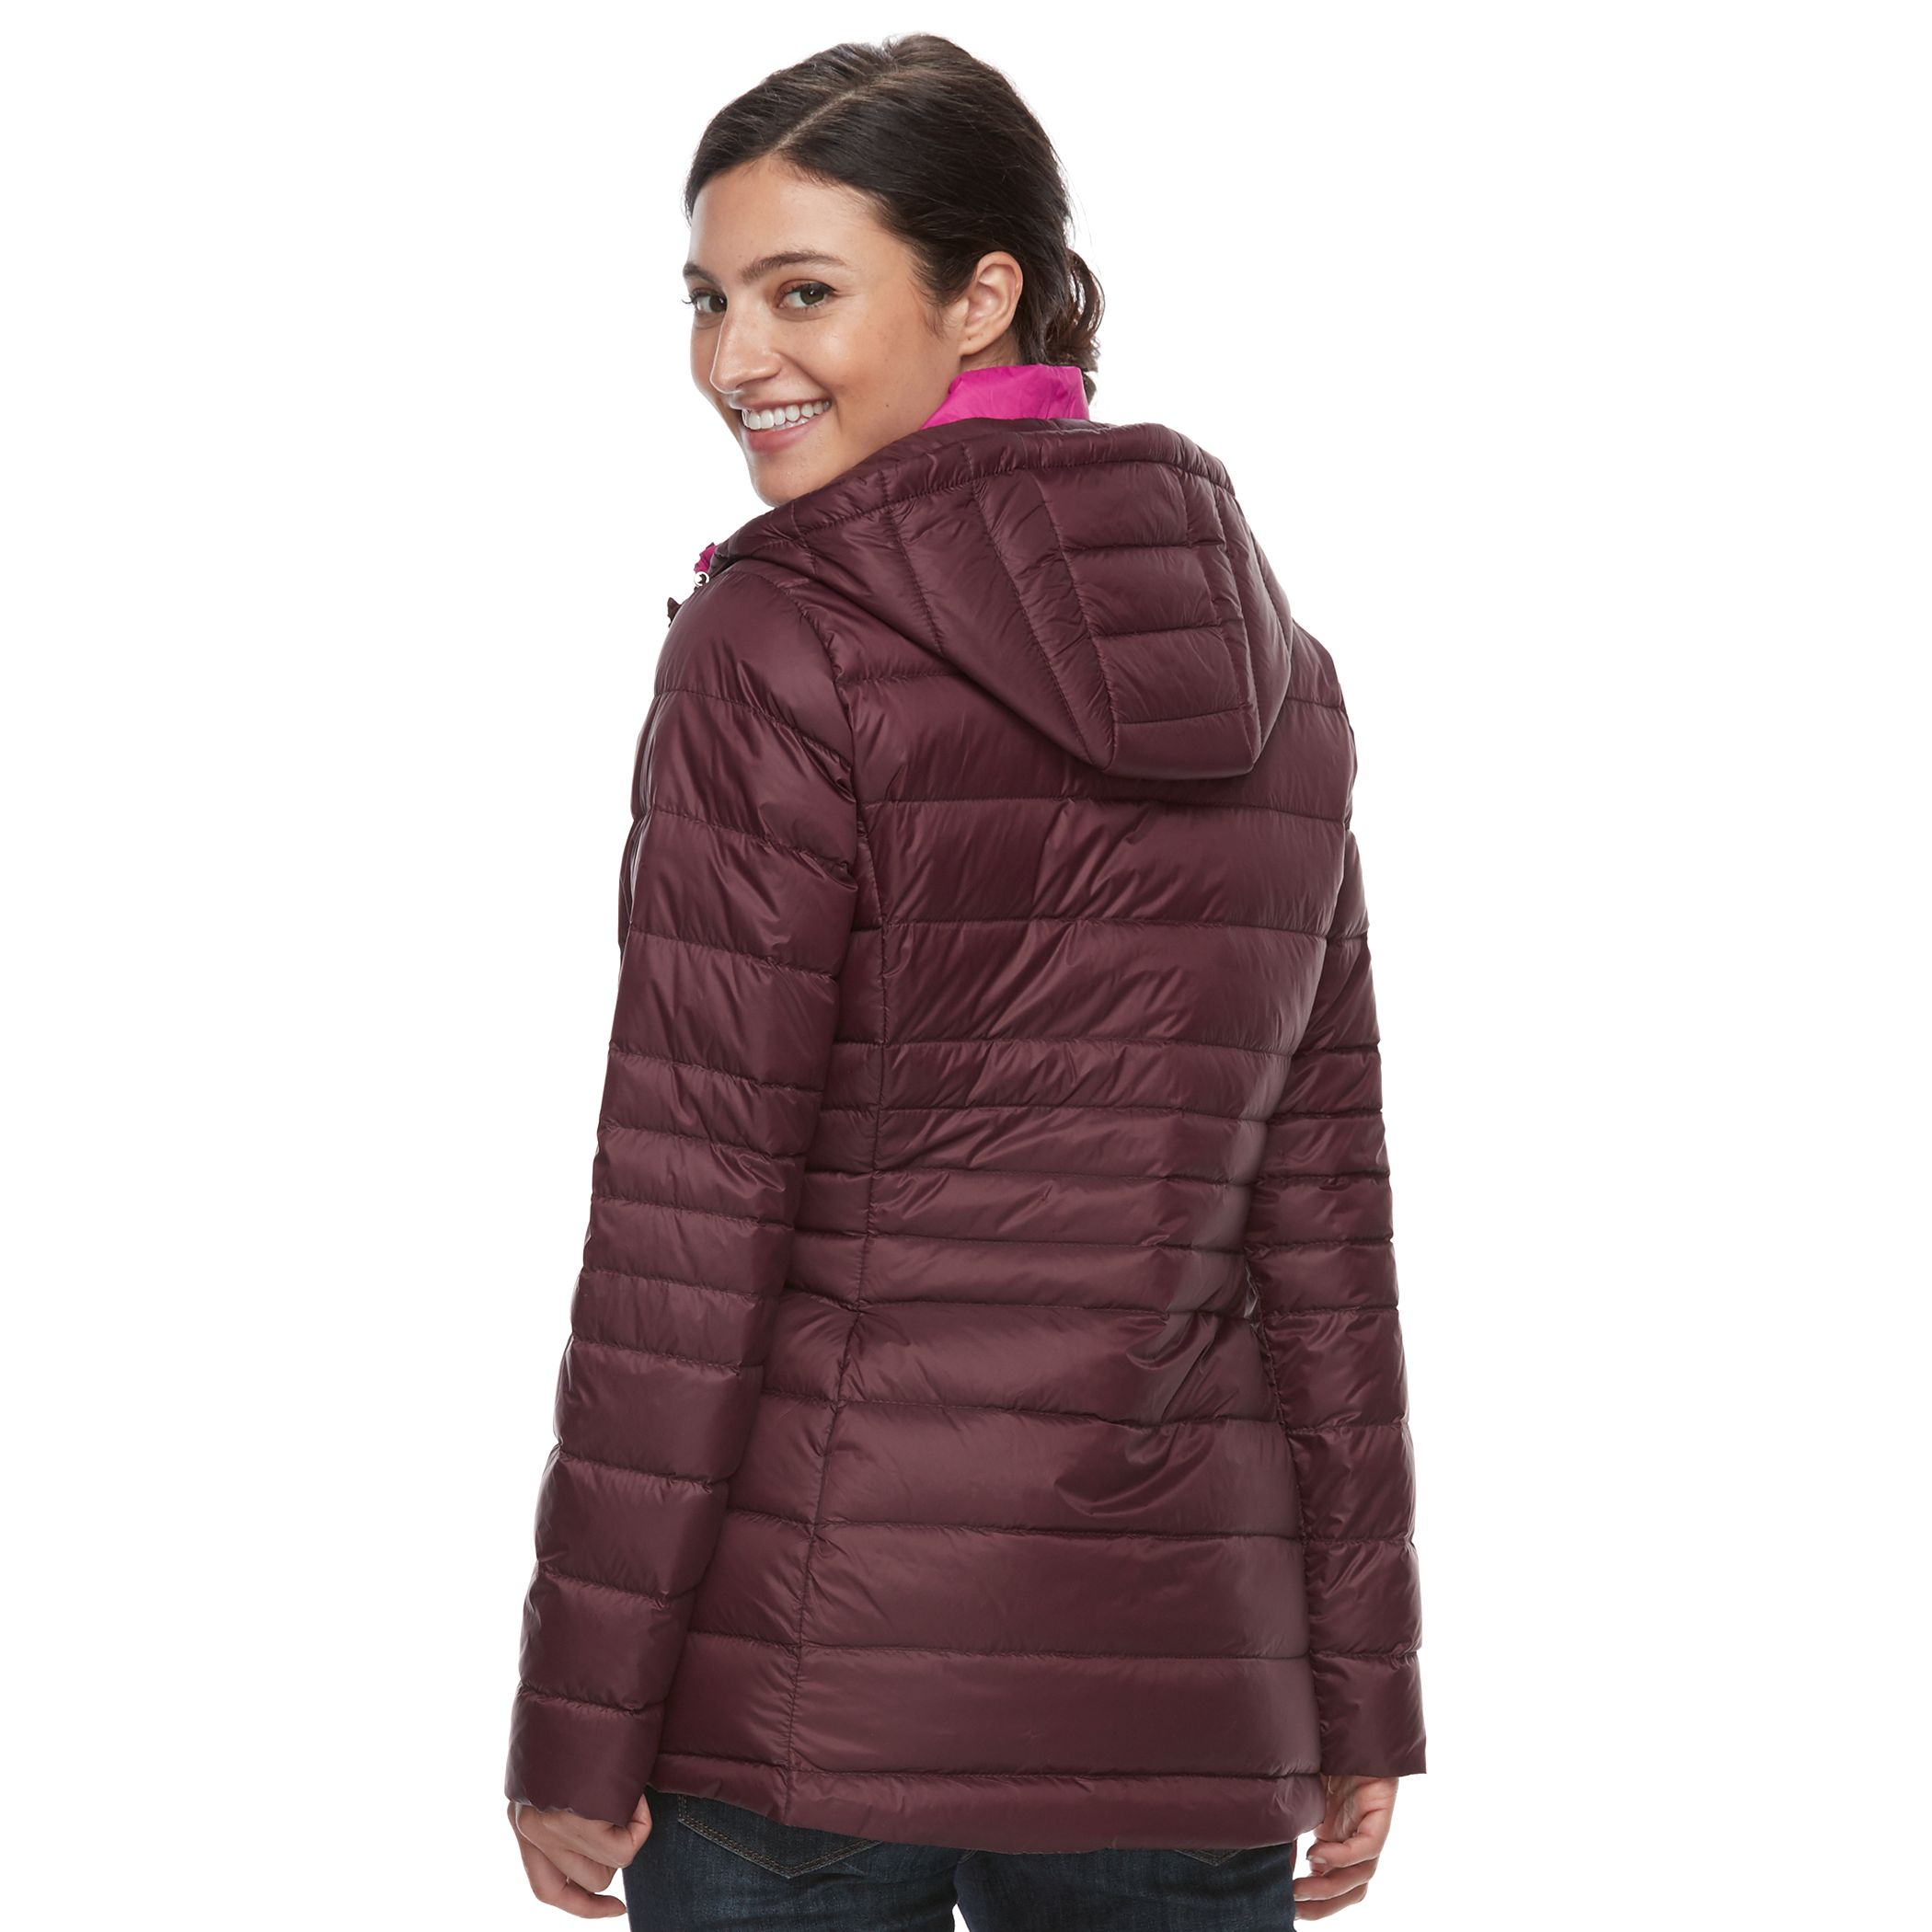 purple on quilted s brando quilt women skin original product jacket coat leather luulla